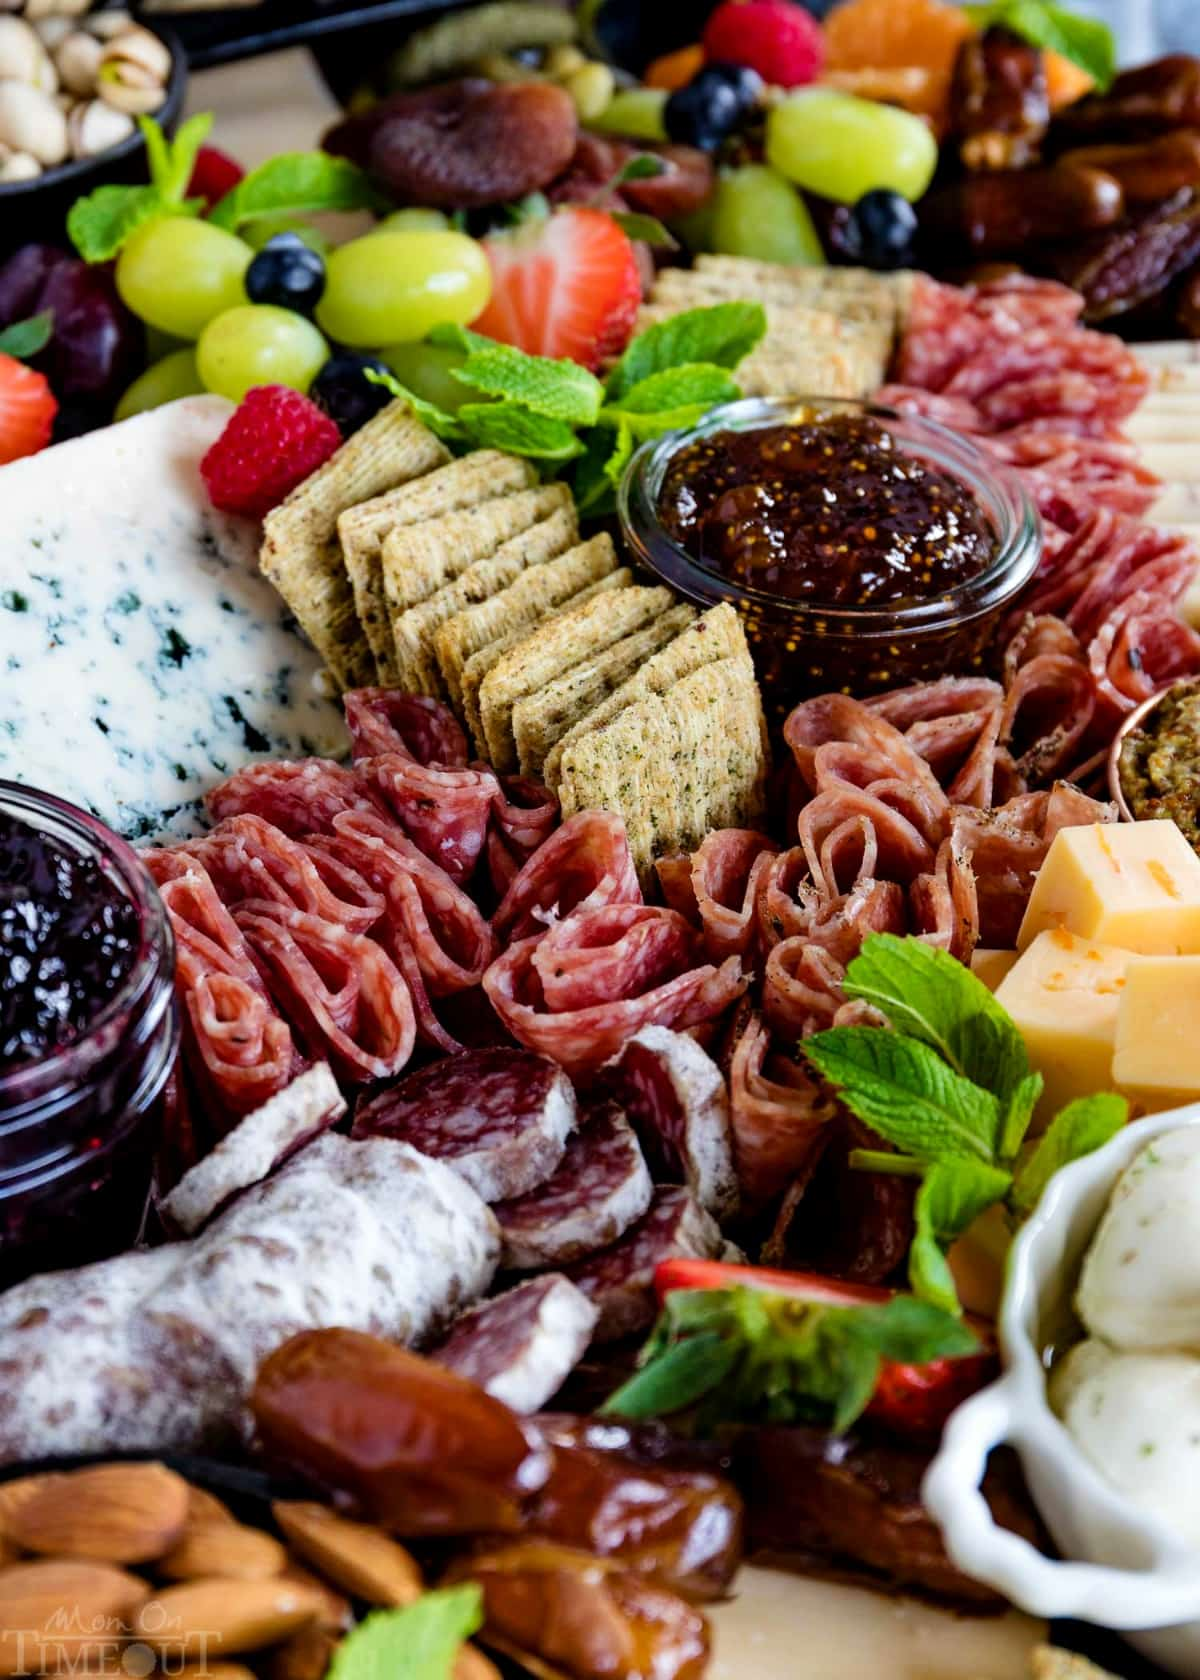 charcuterie-board-easy-cured-meats-dried-fruits-almonds-bowls